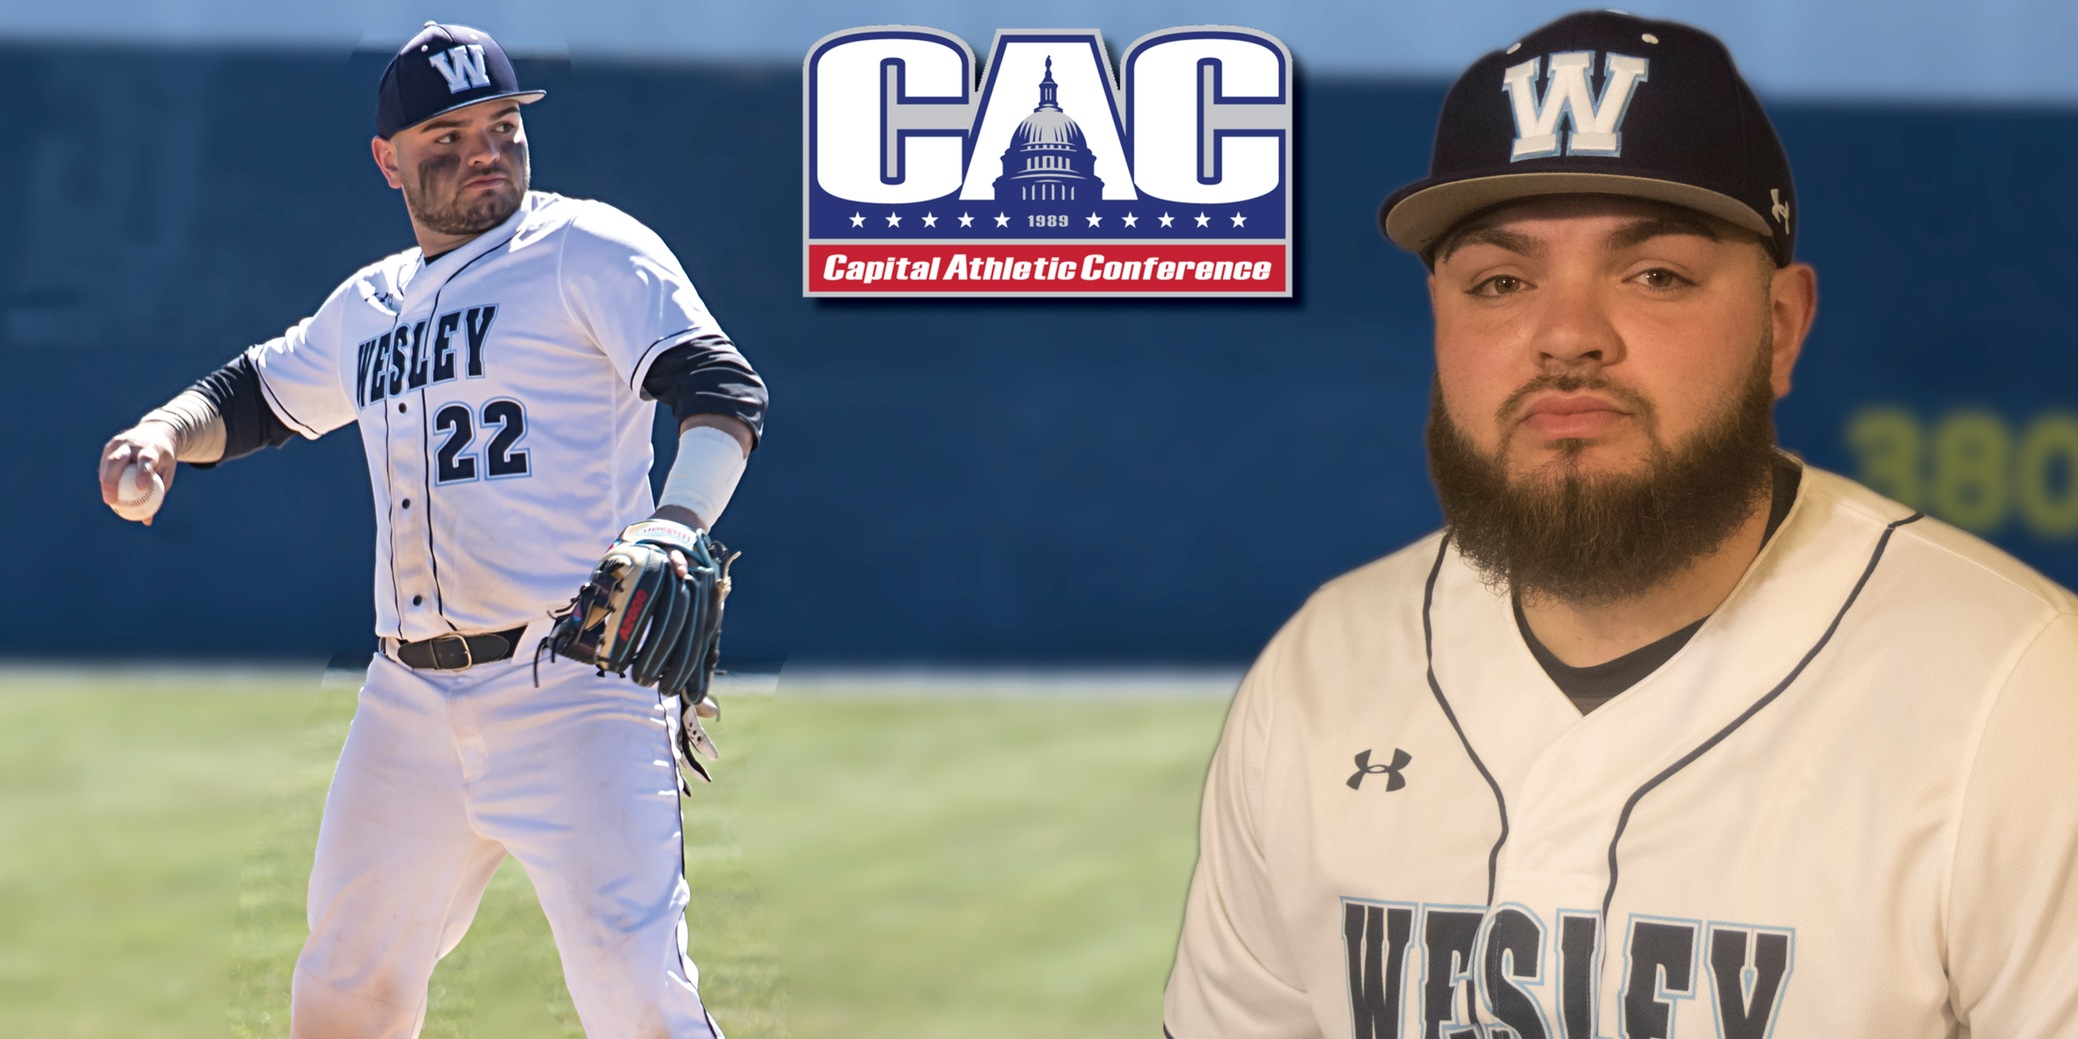 Seibert named CAC Player of the Week